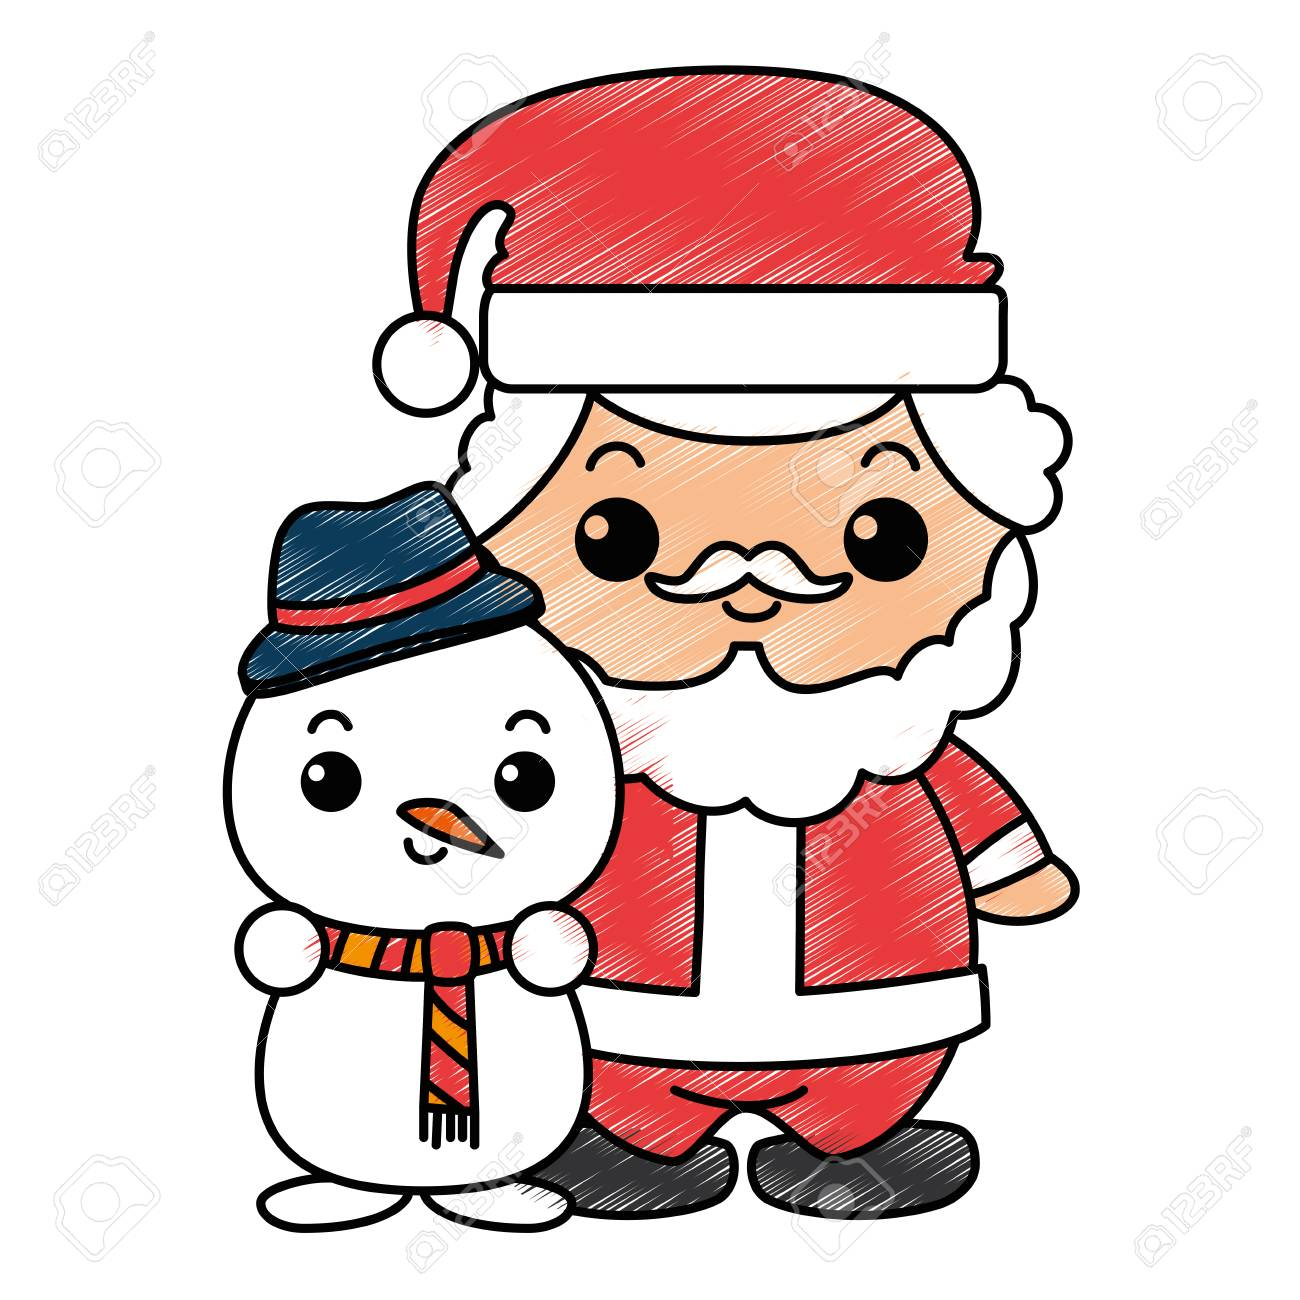 Cute Santa Claus With Snowman Kawaii Characters Vector Illustration Stock Photo Picture And Royalty Free Image Image 89850813